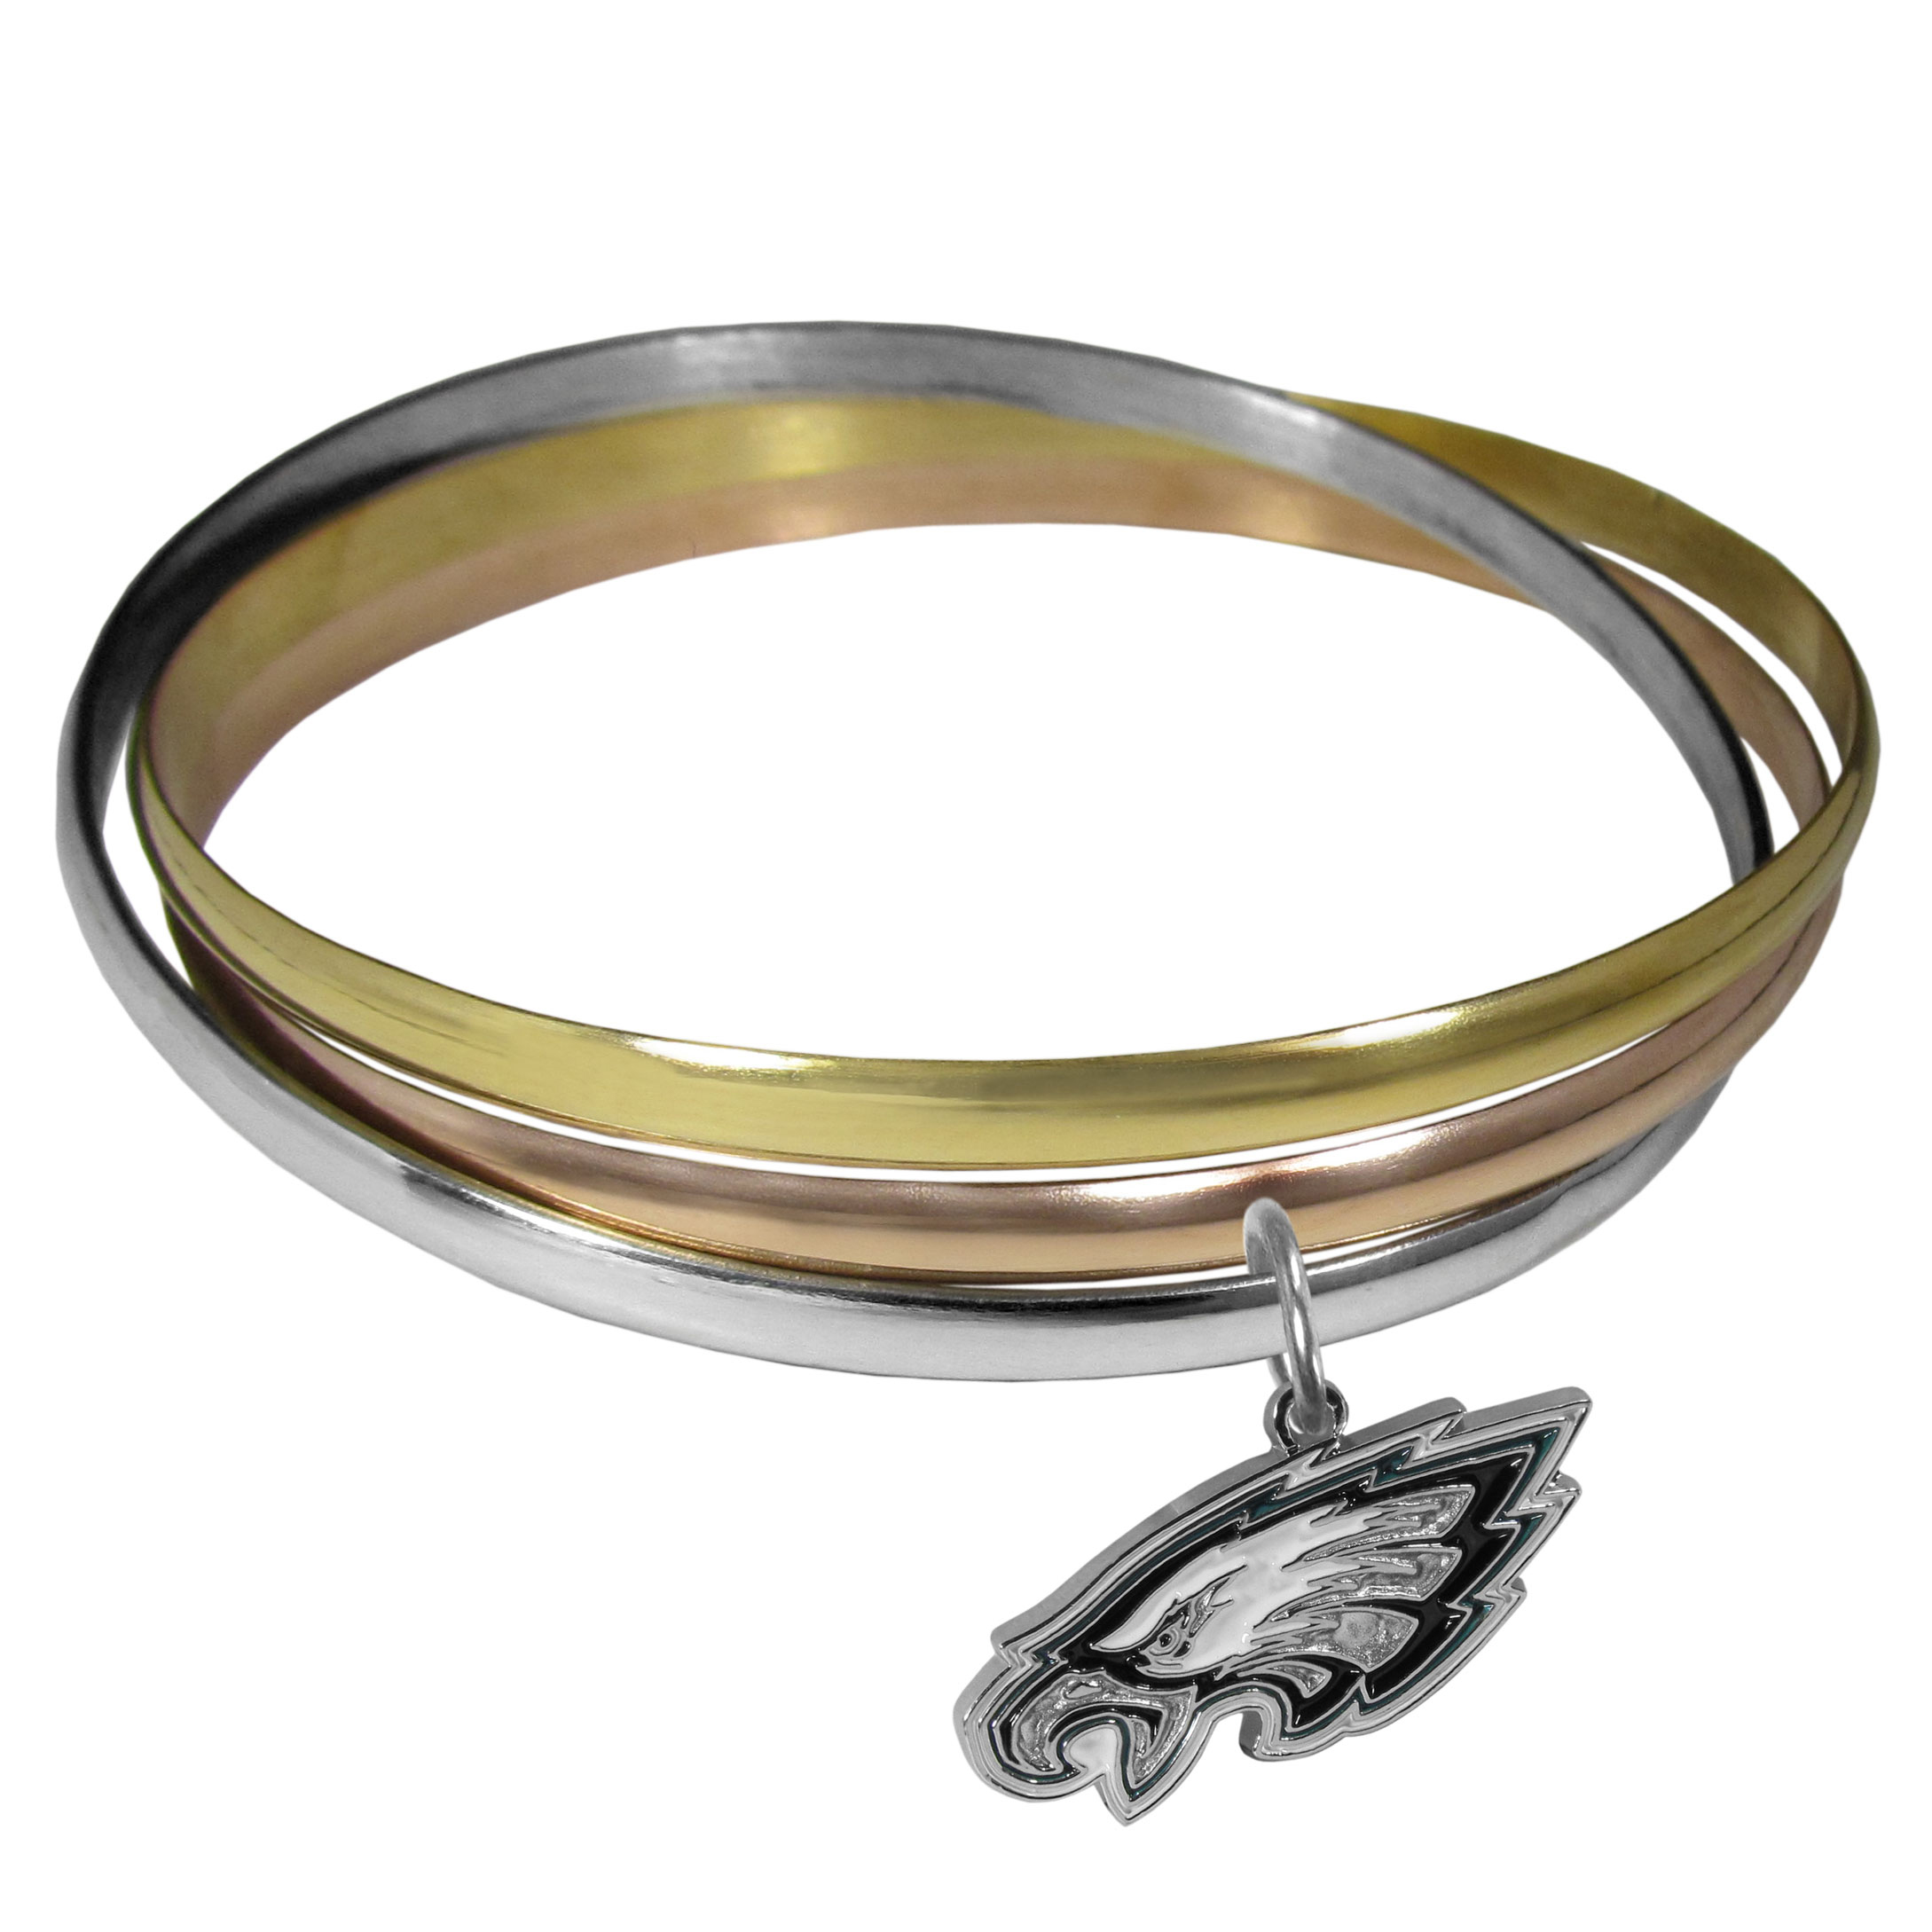 Philadelphia Eagles Tri-color Bangle Bracelet - These beautiful bangles come in a interlocking style and feature a fully cast Philadelphia Eagles charm with enameled team colors. The bracelet has a silver toned bangle, gold tone bangle and brass toned bangle.